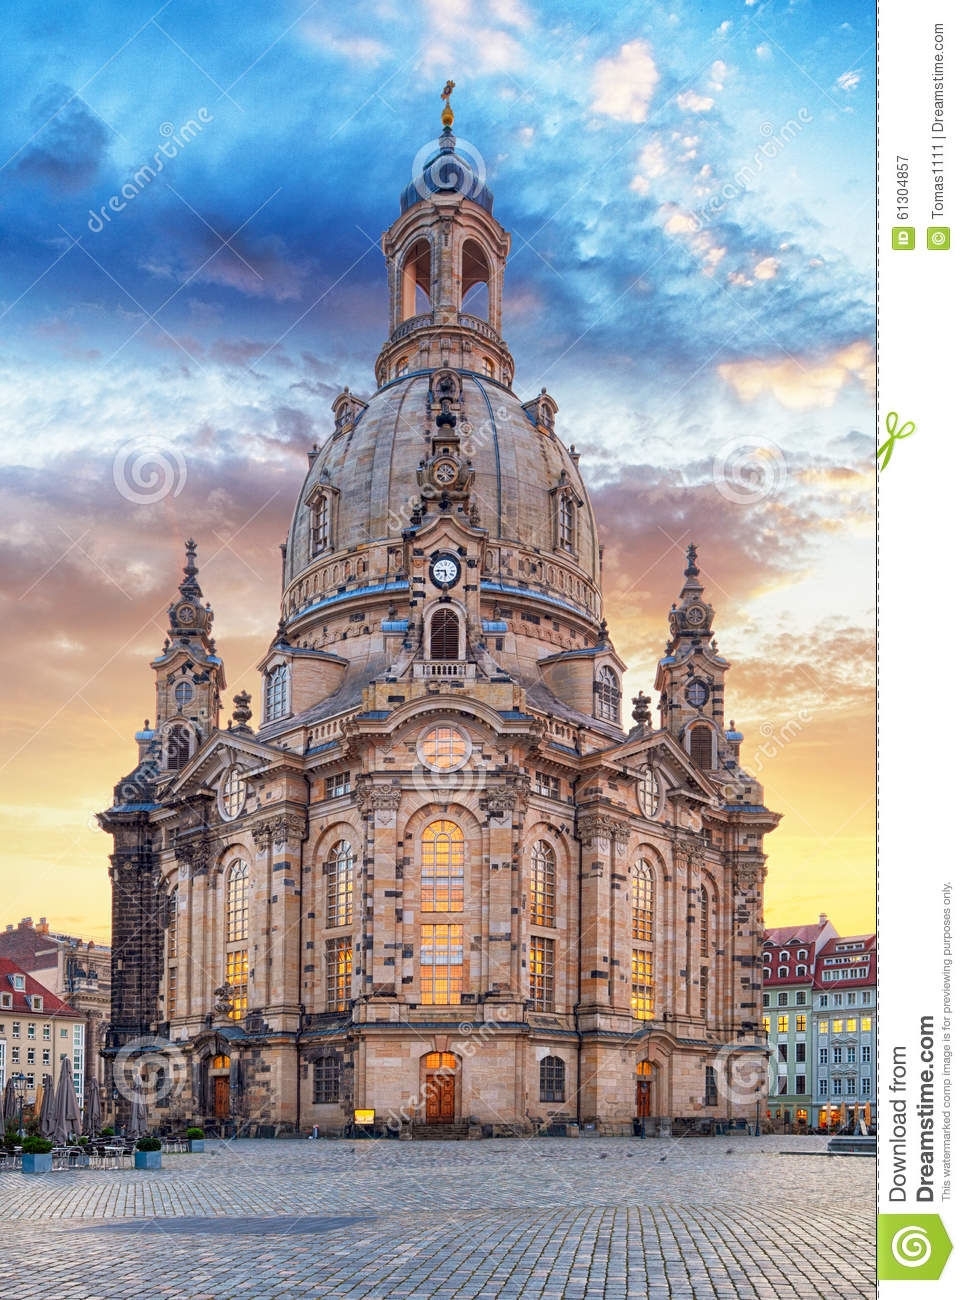 church frauenkirche in dresden germany church of our lady stock photo image 61304857. Black Bedroom Furniture Sets. Home Design Ideas